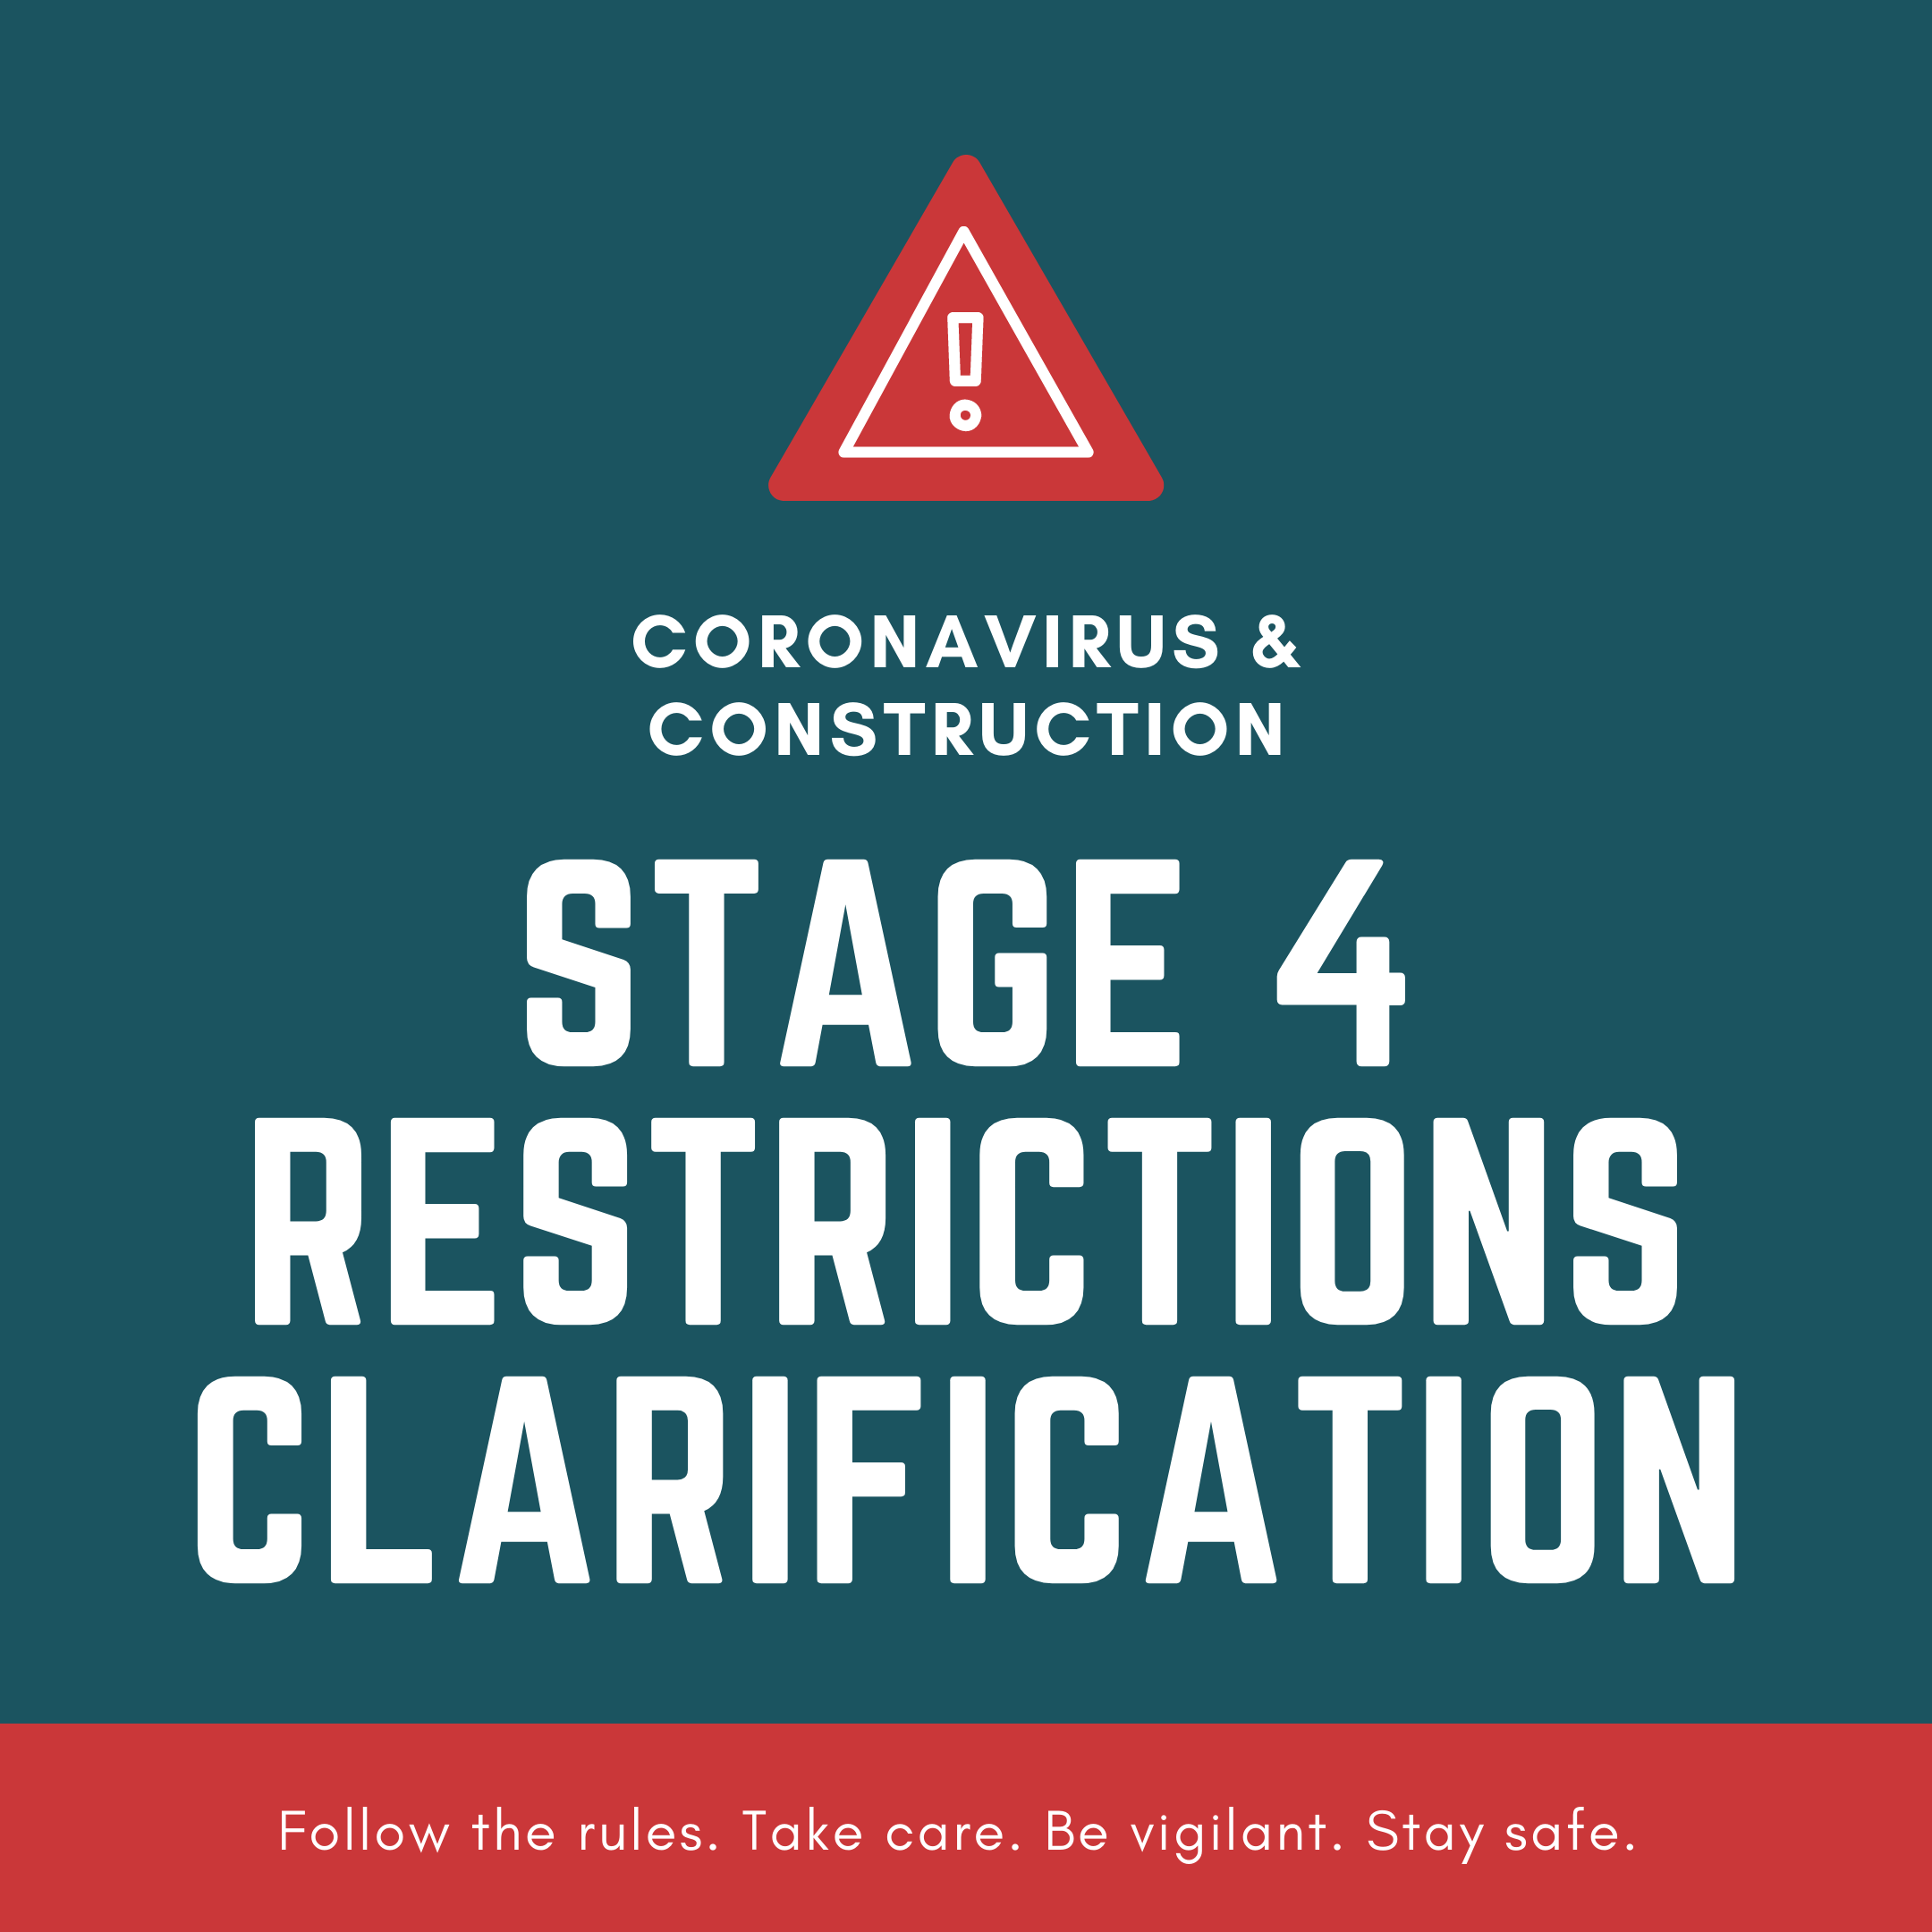 Building Industry Stage 4 Clarity